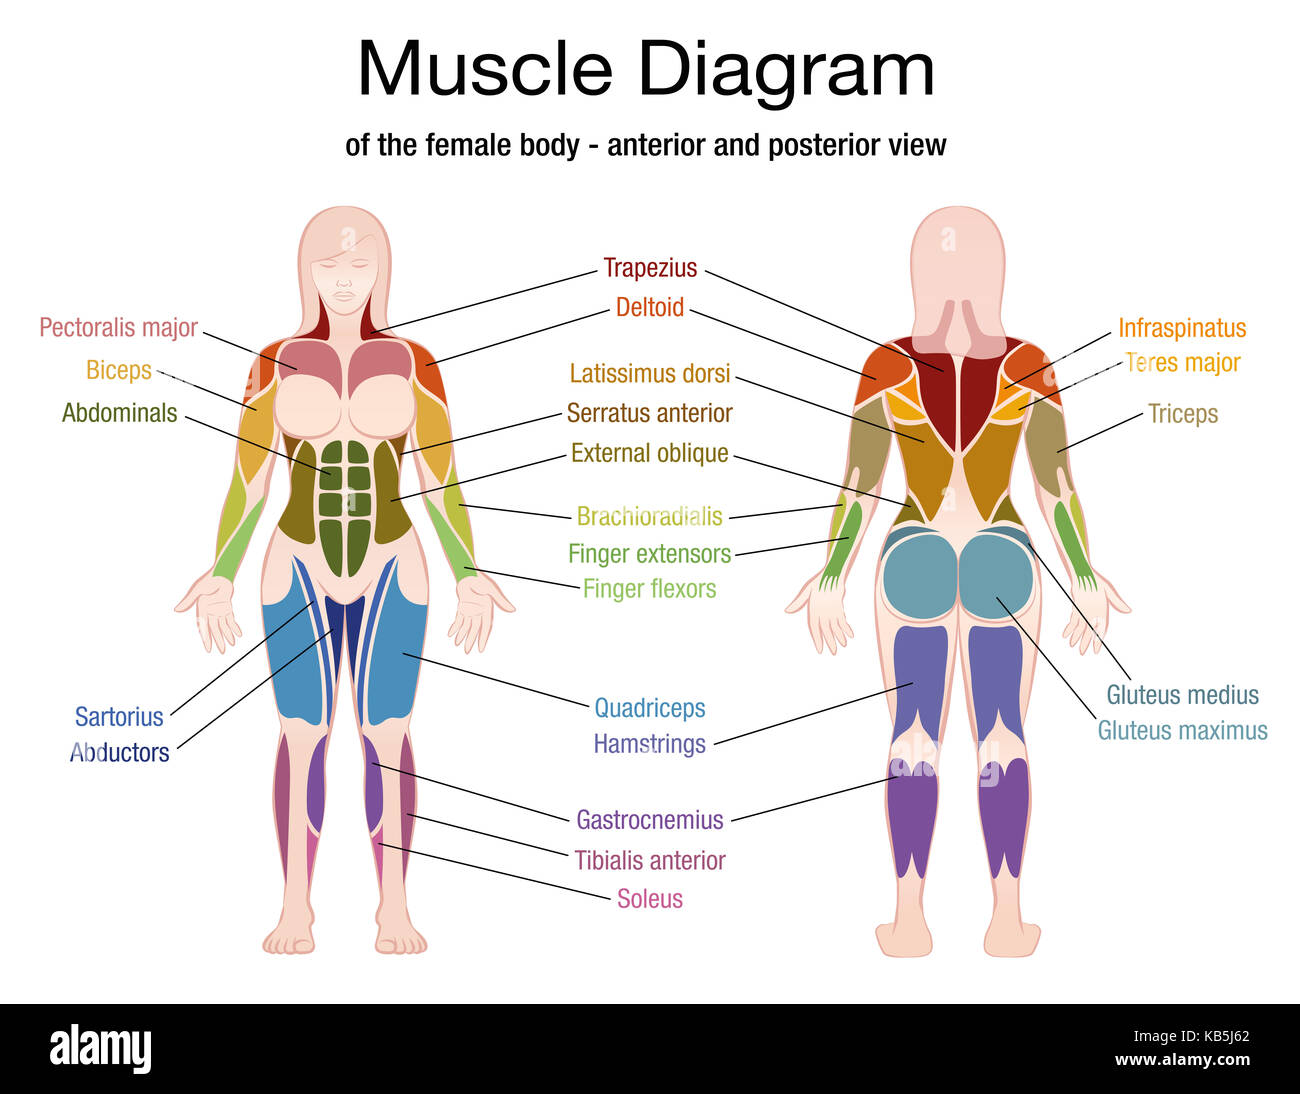 Human Body Muscles Diagram Stock Photos Amp Human Body